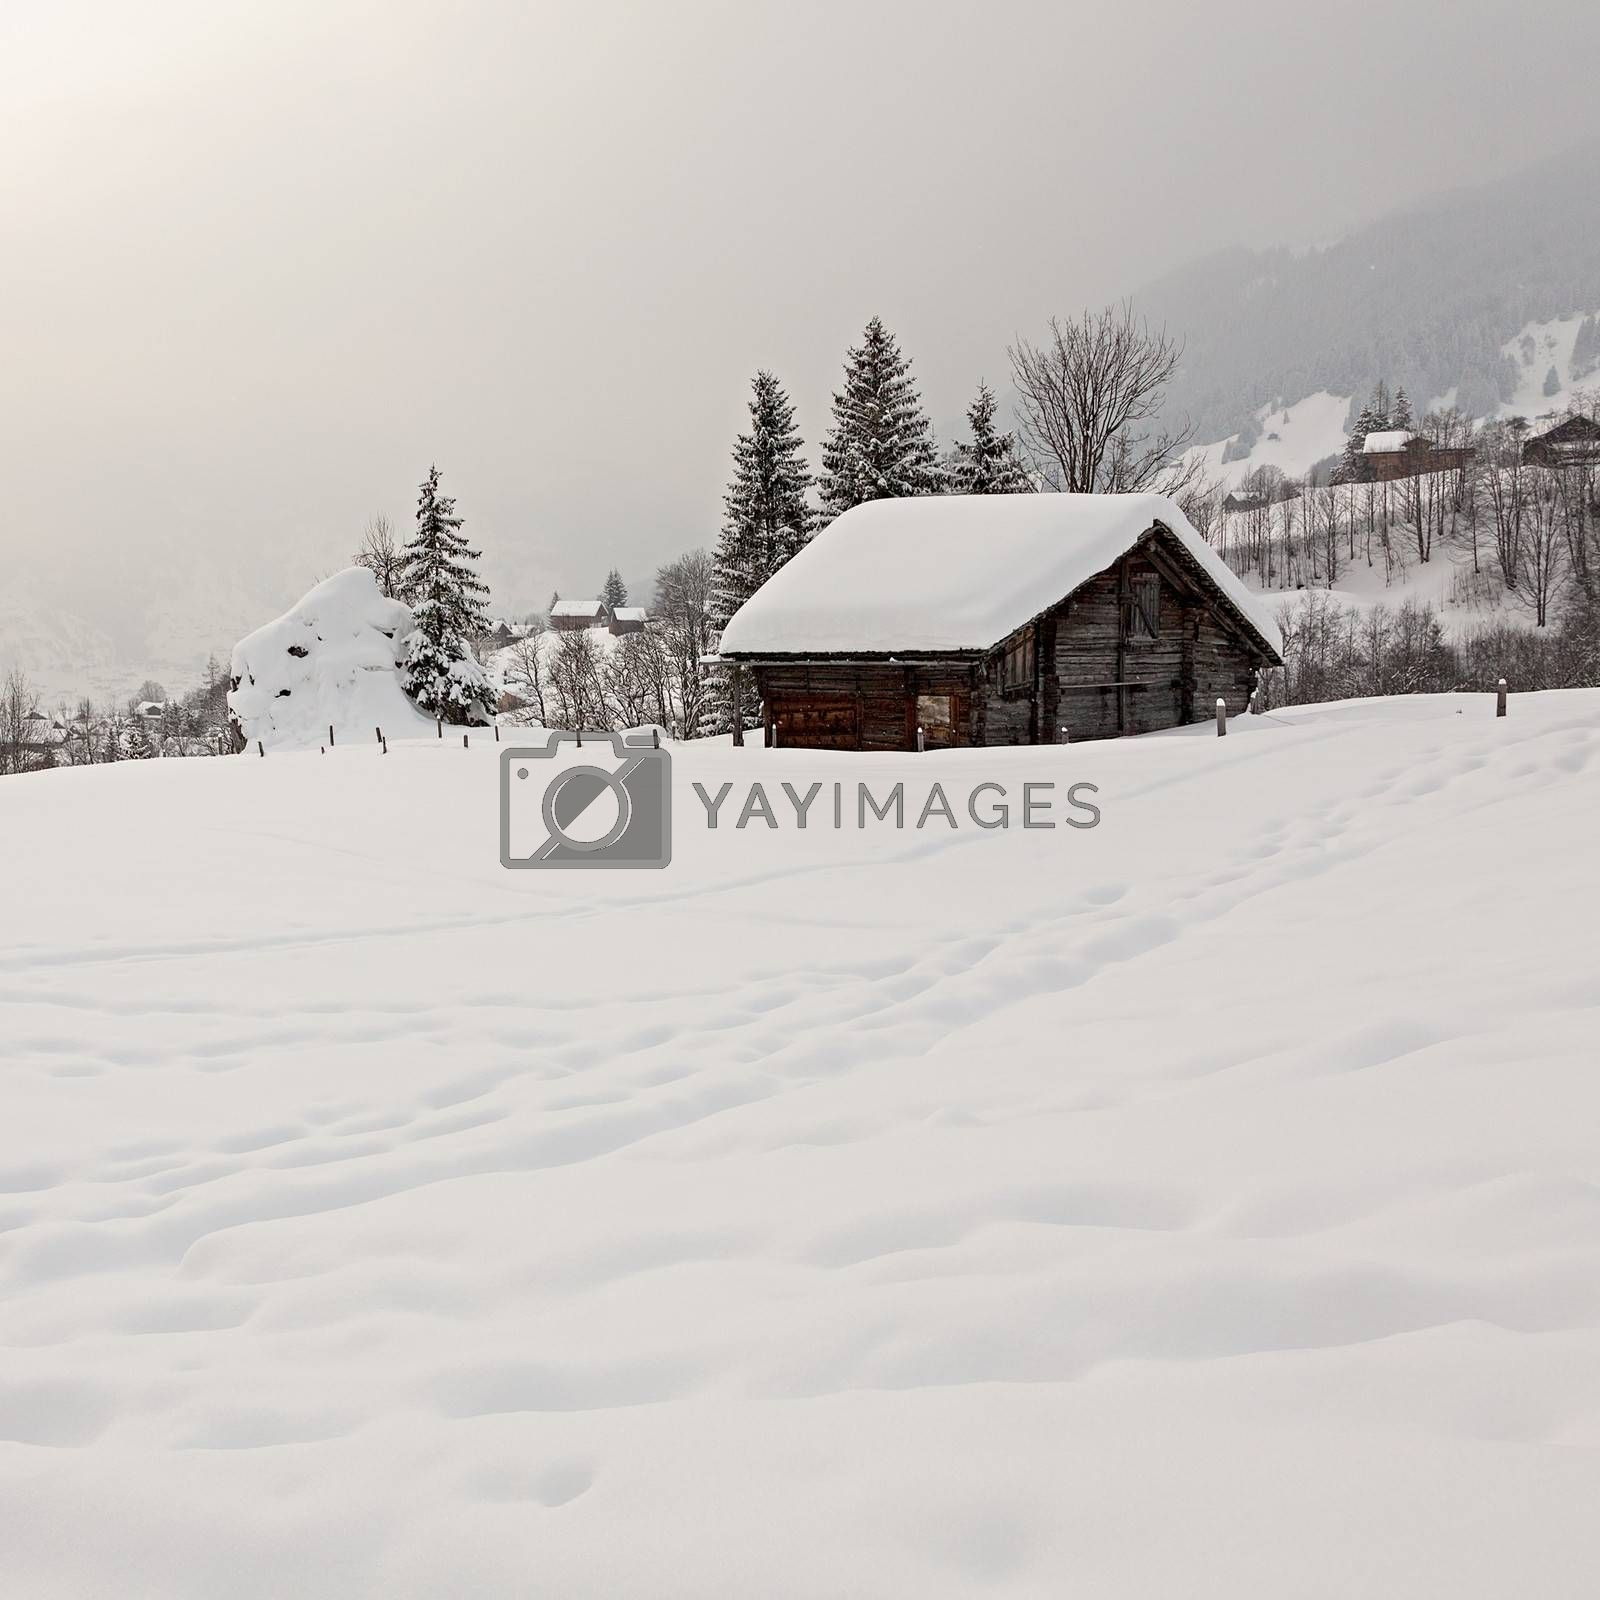 Royalty free image of Barn on Snowy Field by ajn